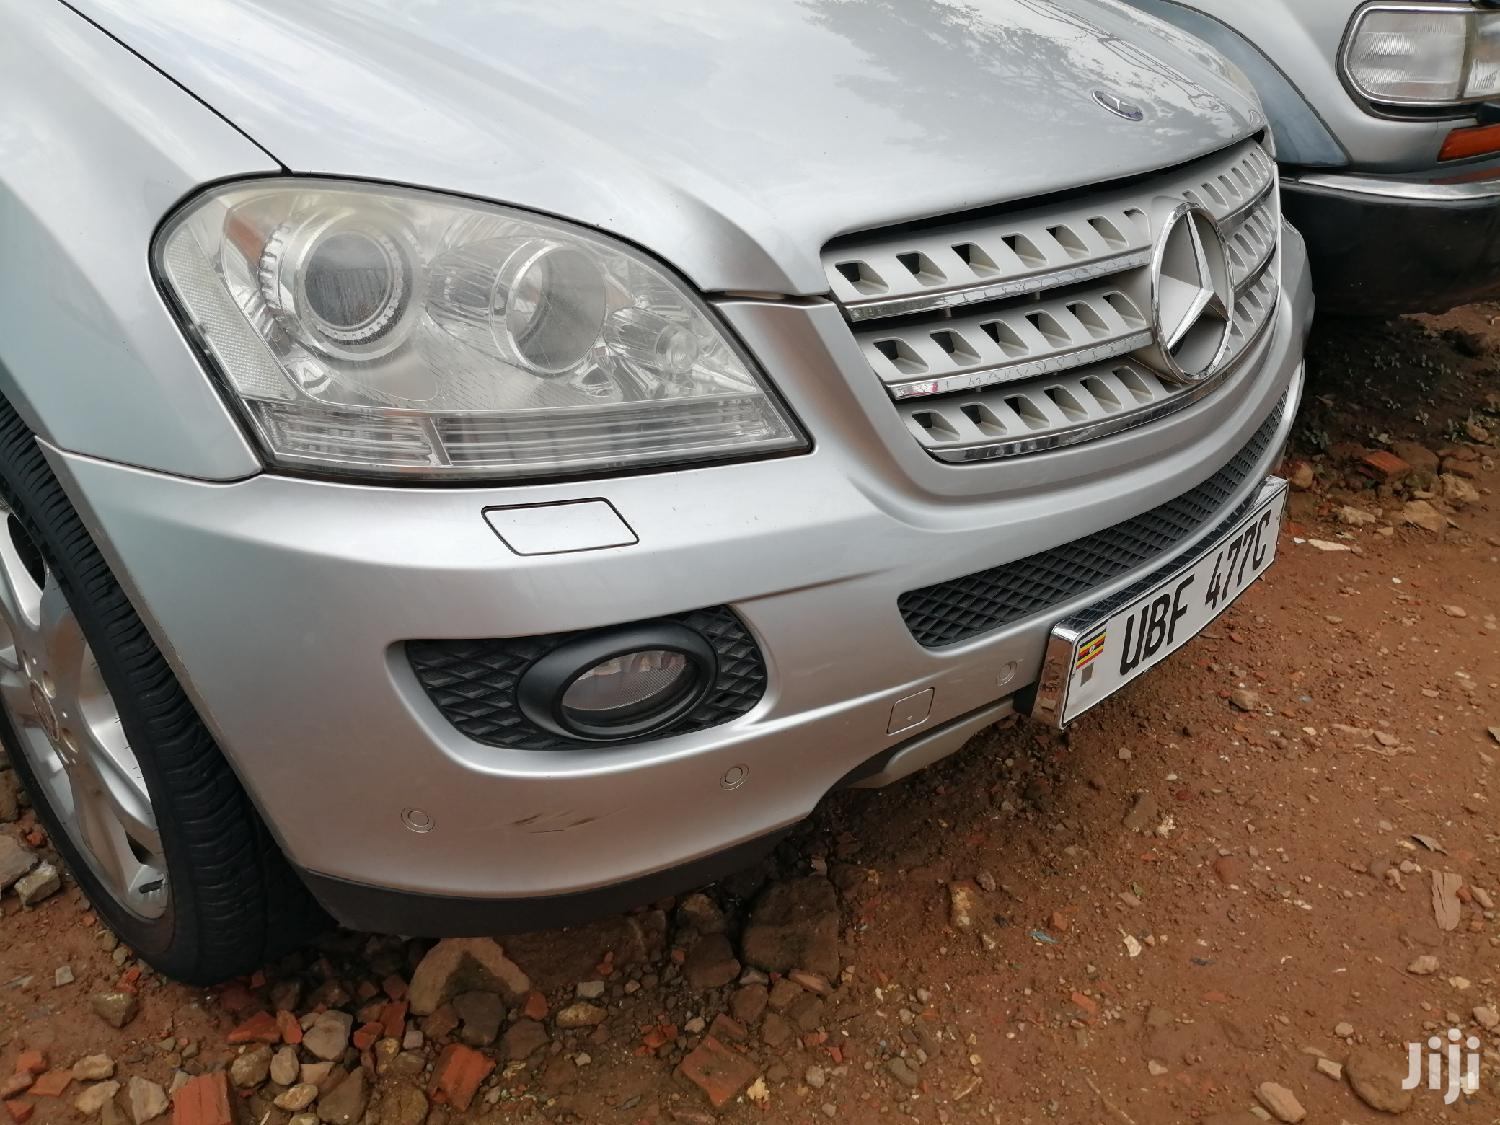 New Mercedes-Benz E320 2004 Silver | Cars for sale in Kampala, Central Region, Uganda